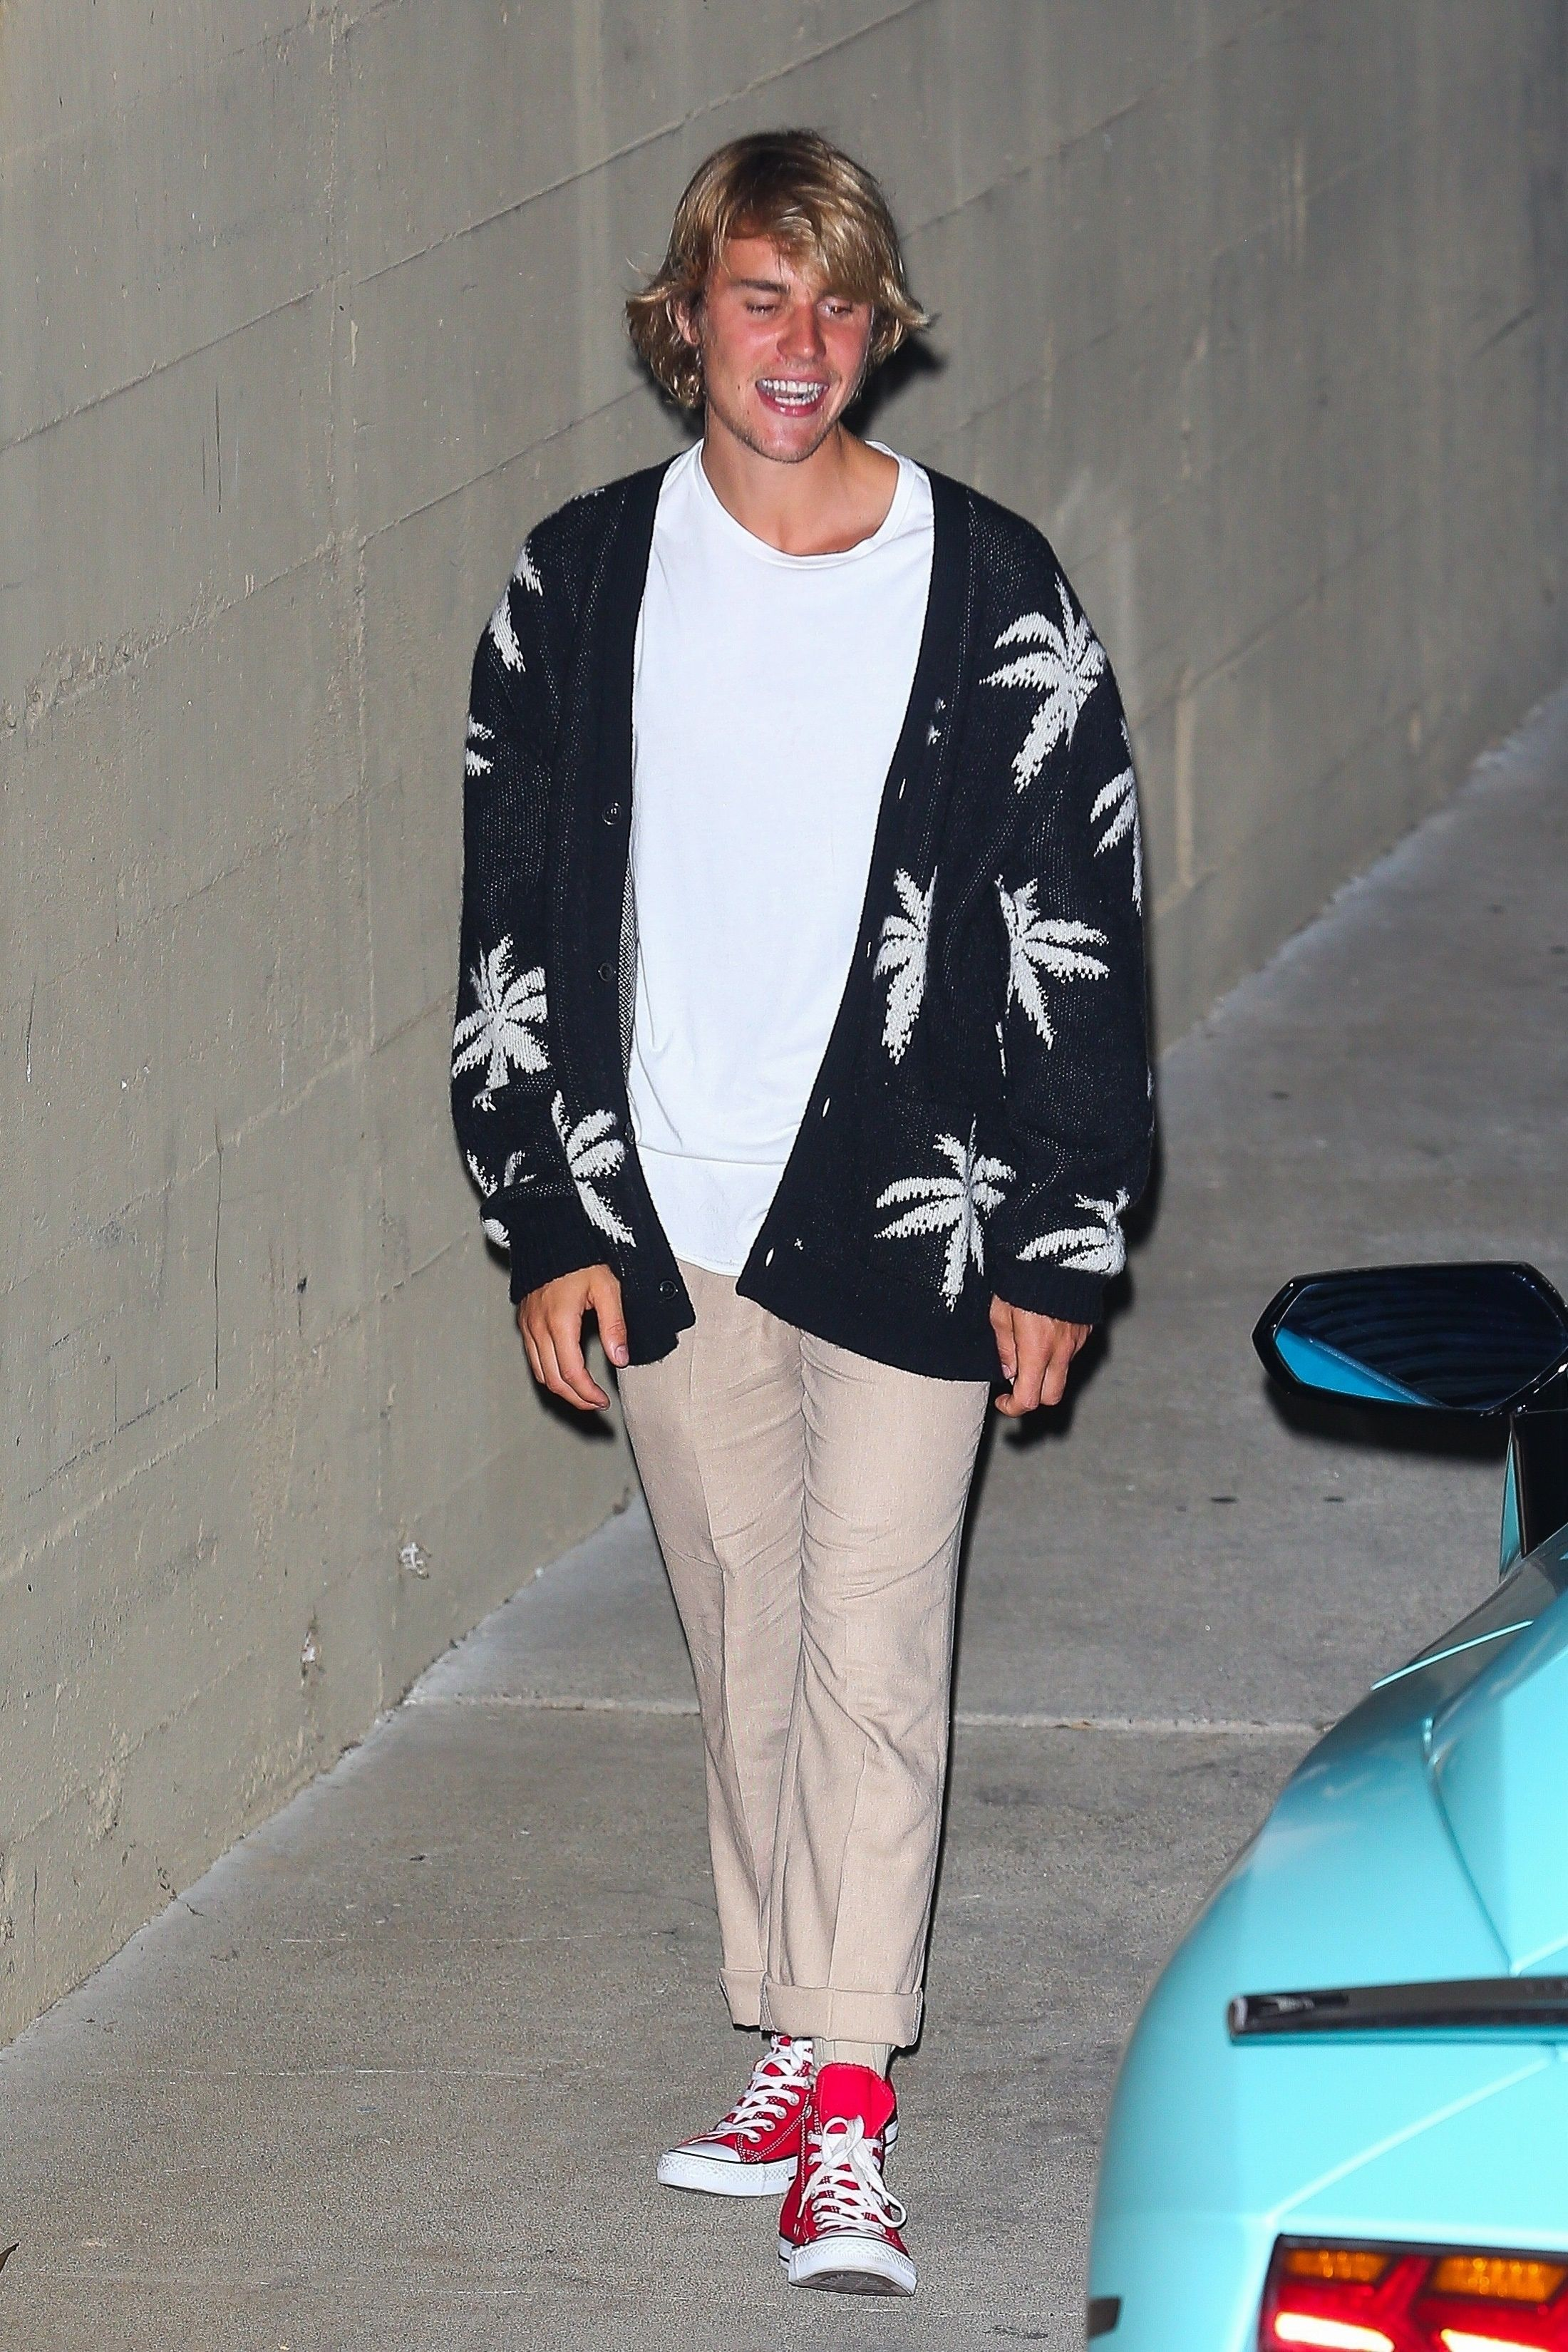 All About Justin Bieber: Justin Bieber Wears New High Tops